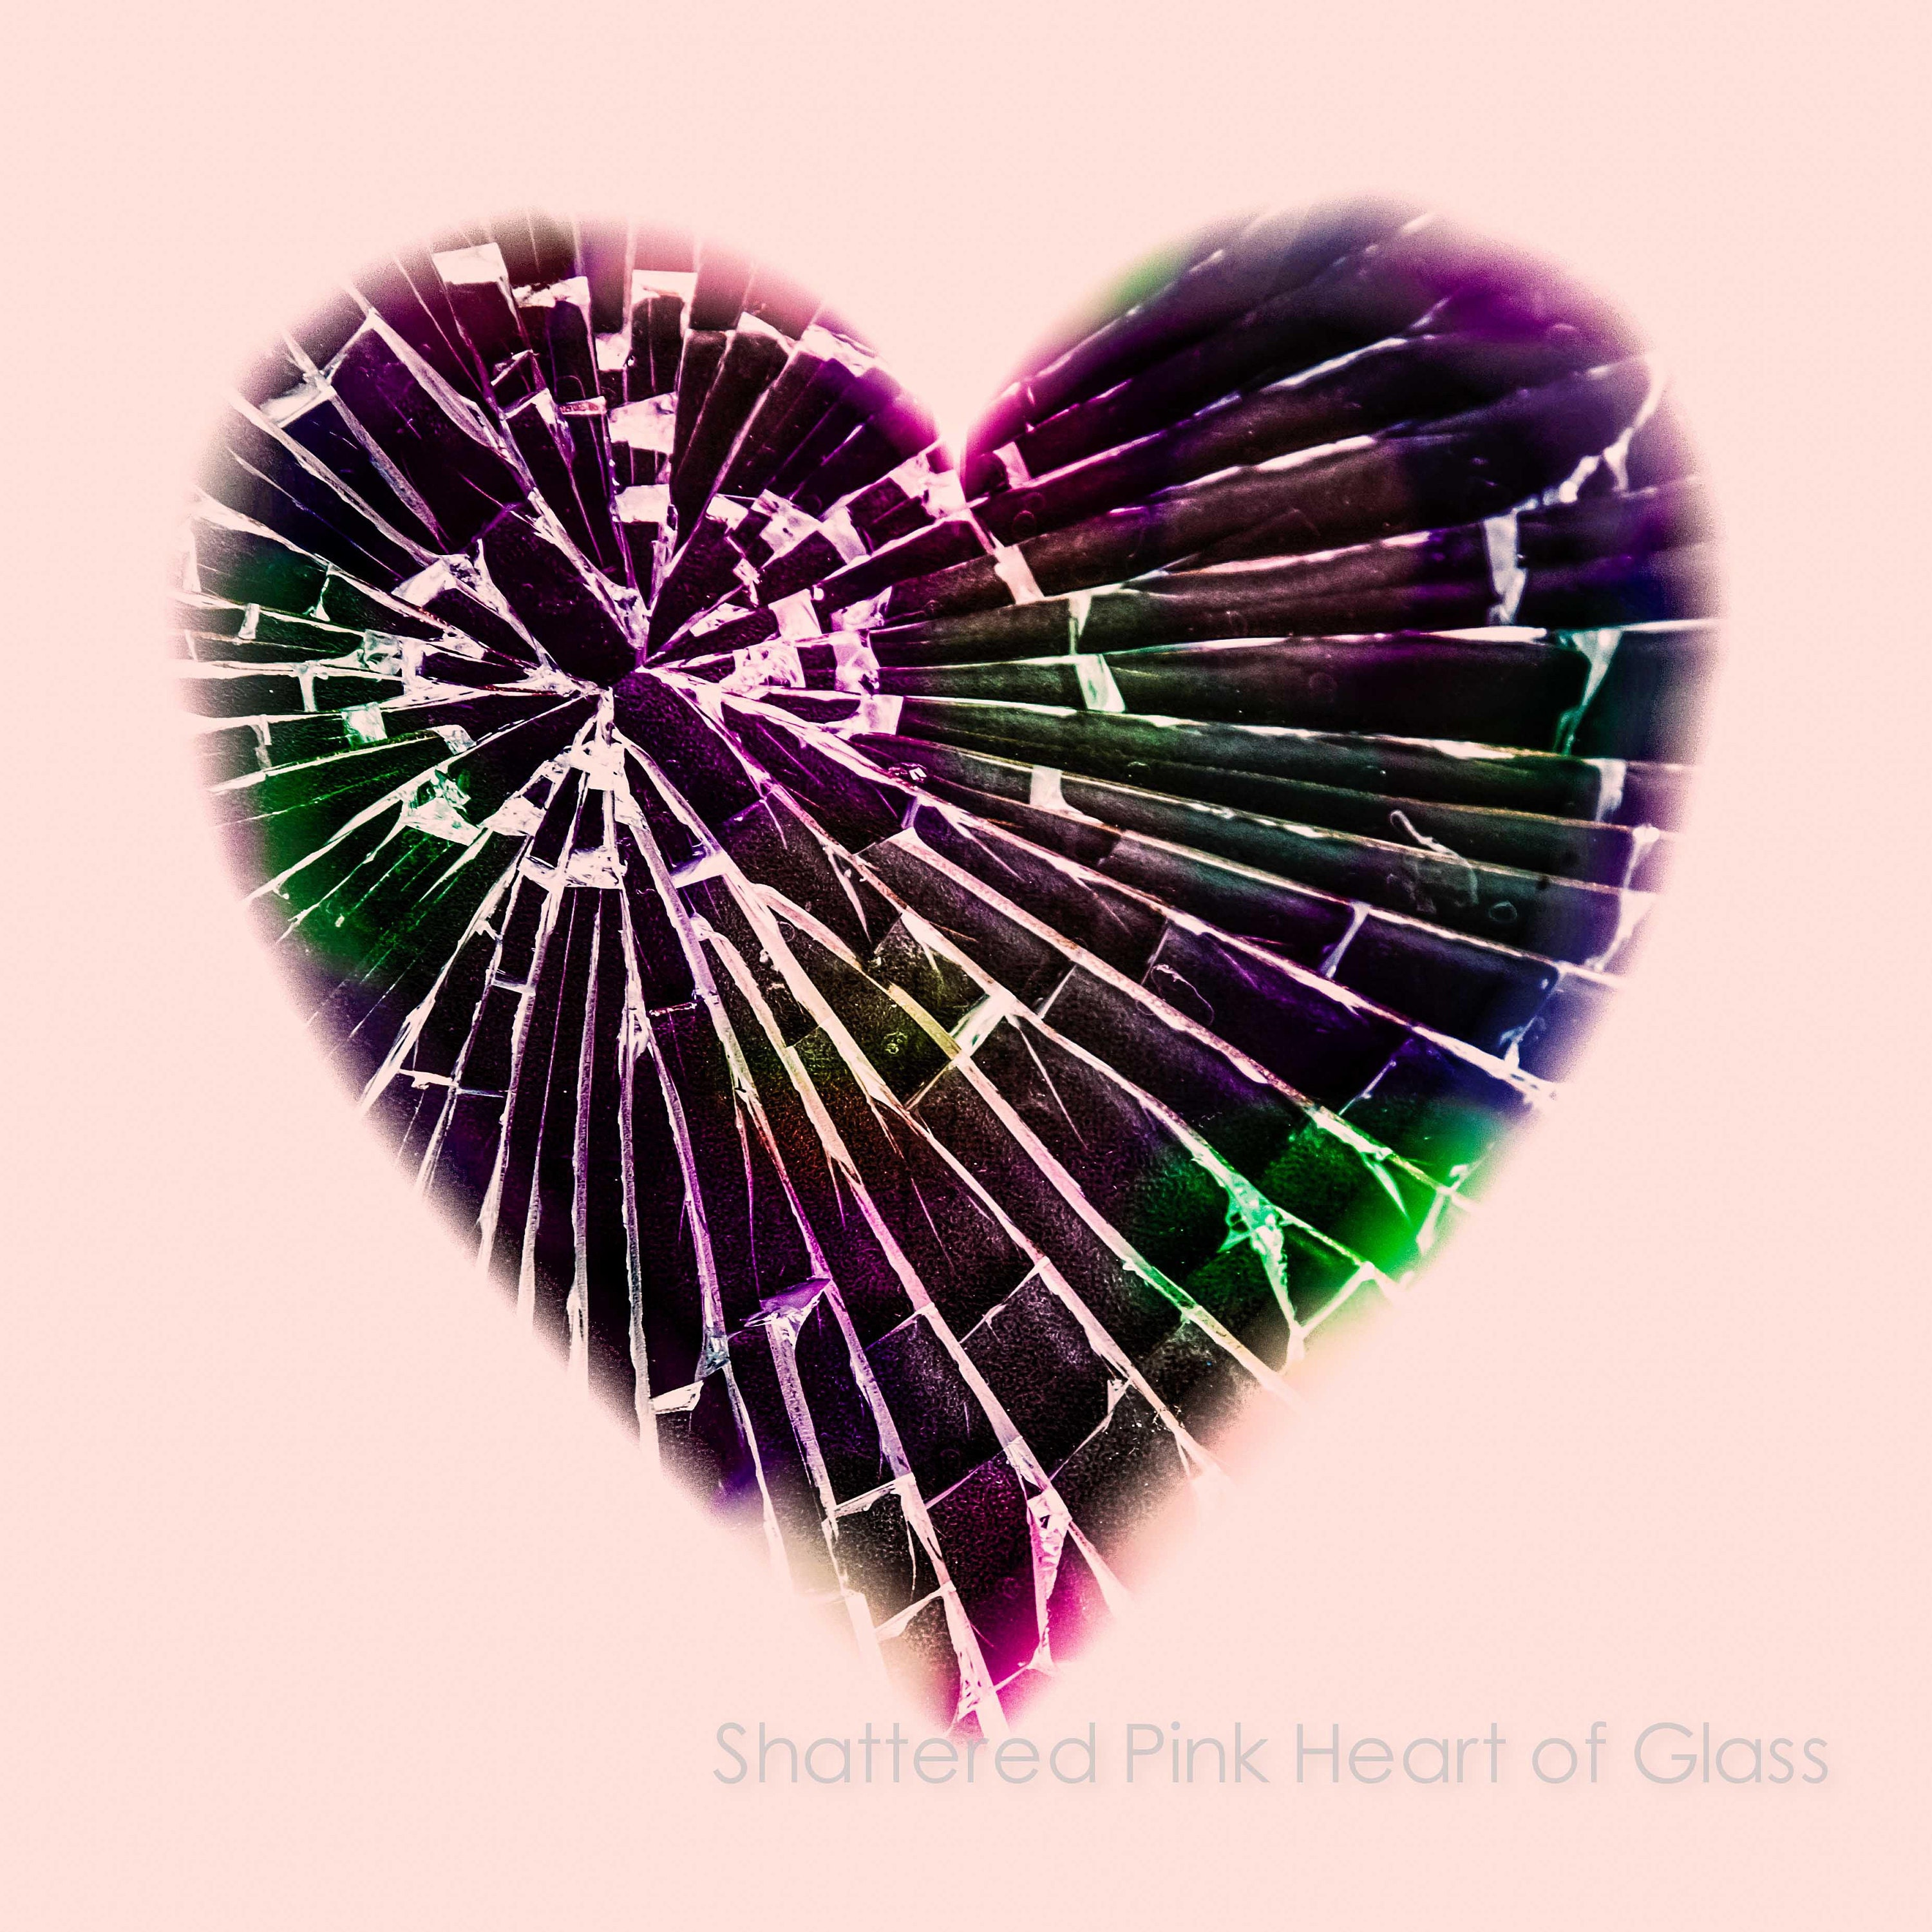 pink heart shattered glass wall art and fine art prints- black heart on pink background- available as unframed limited edition prints and ready to hang wall art in custom sizes